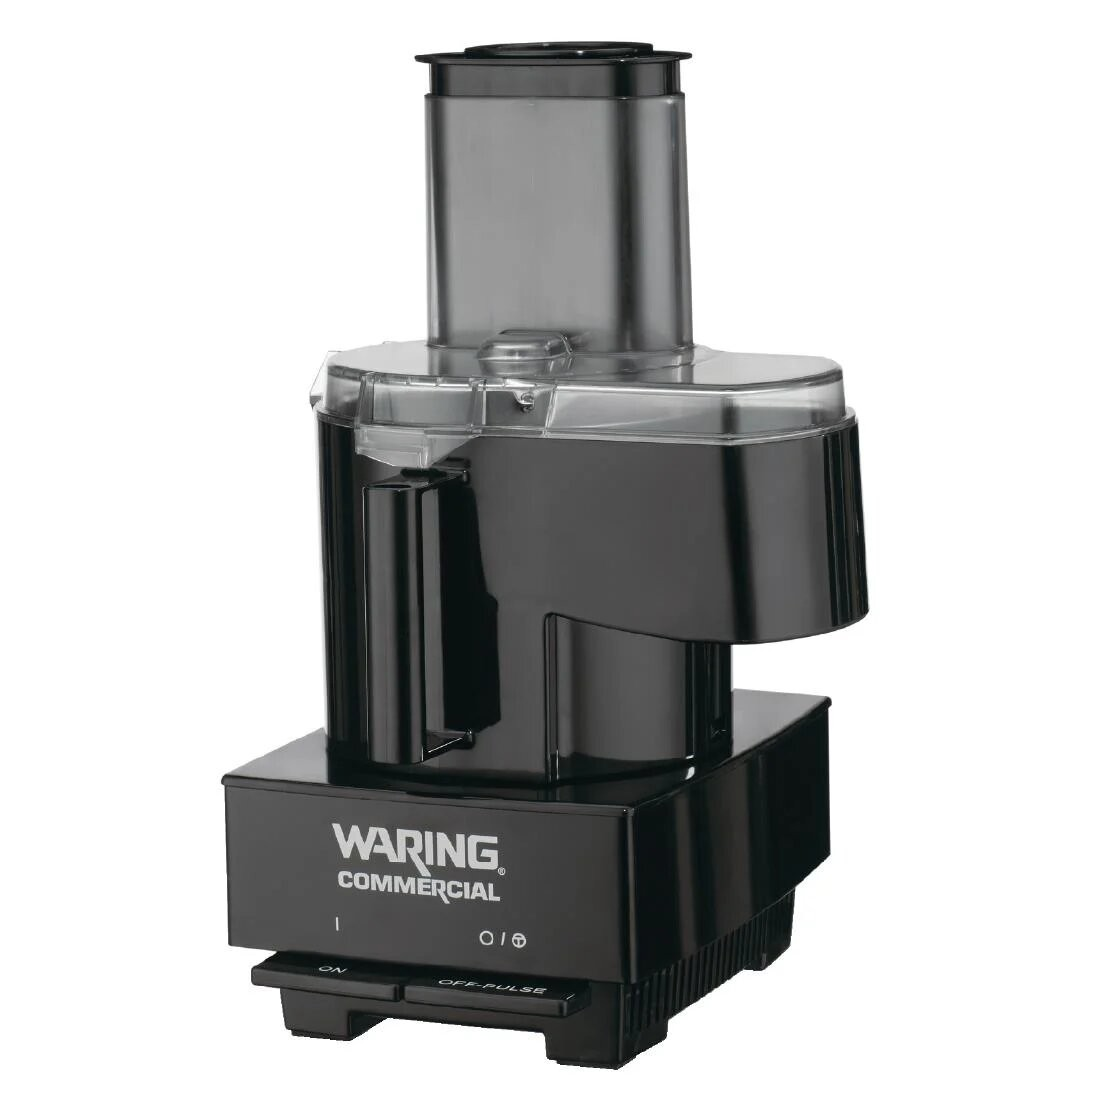 Waring WFP14SCK Single Speed Food Processor with Pulse - CD666